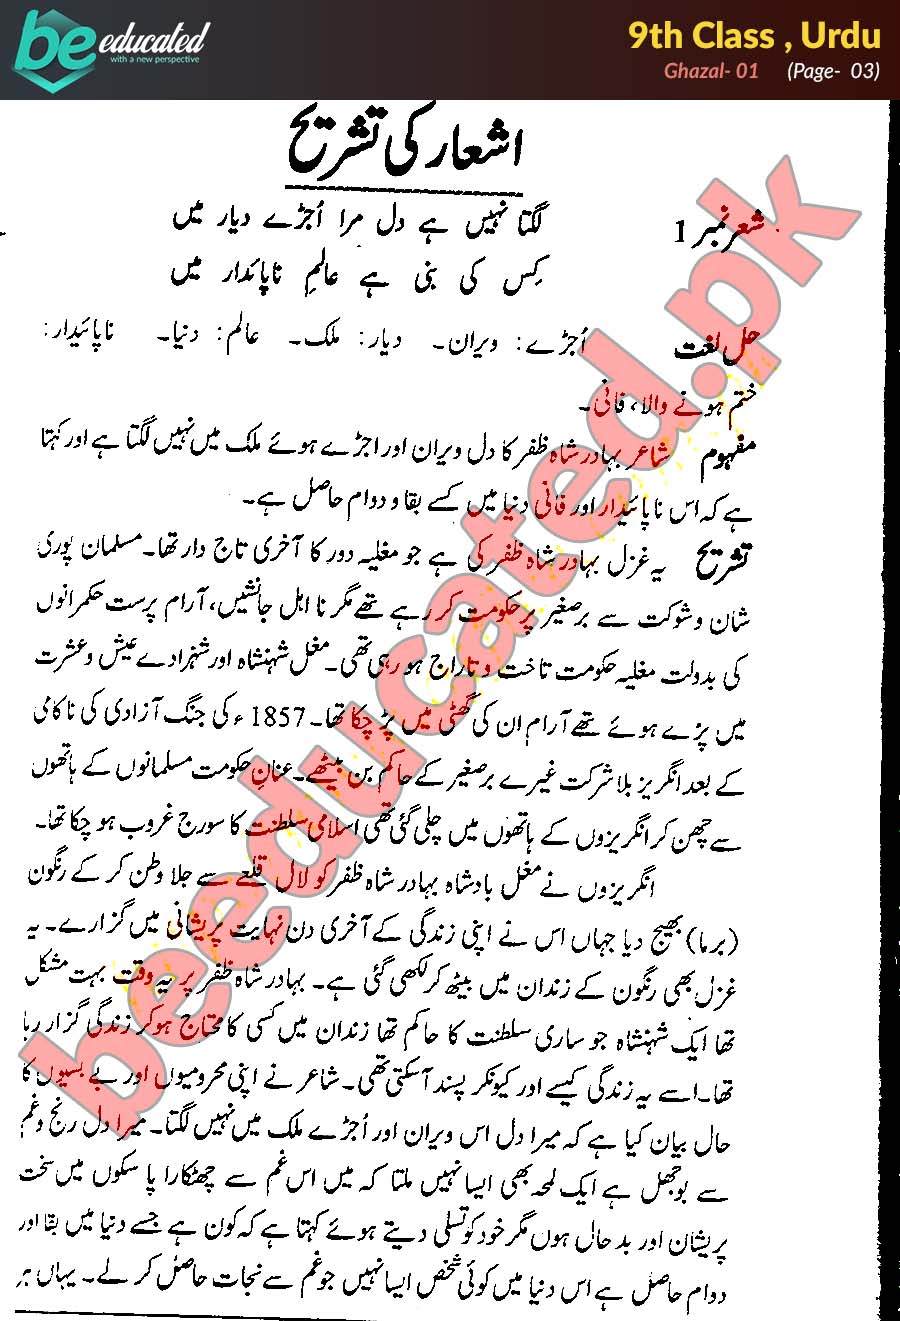 Ghazal 1 Urdu 9th Class Notes - Matric Part 1 Notes